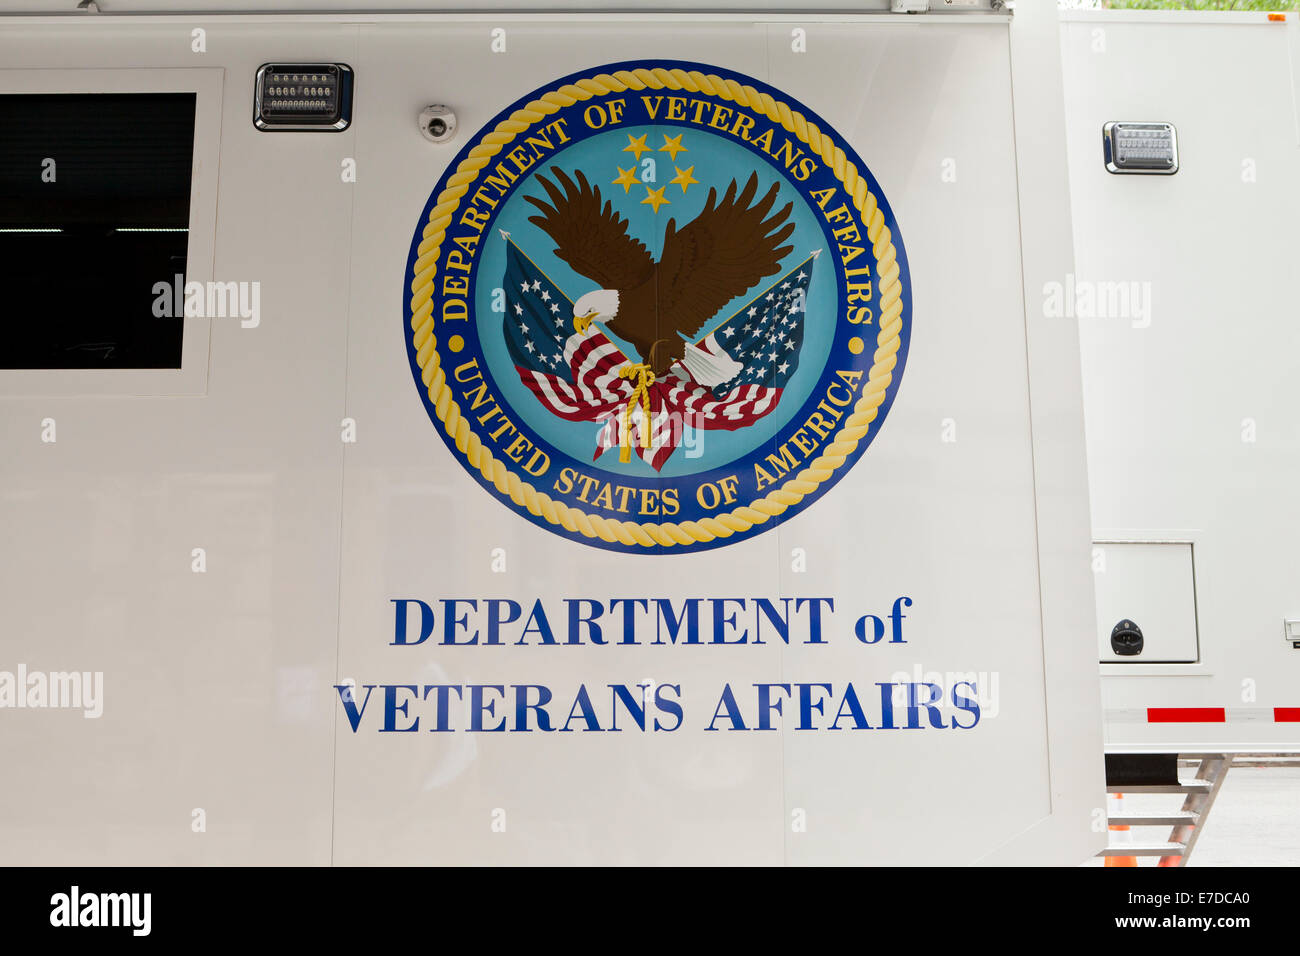 US Department of Veterans Affairs seal - USA - Stock Image